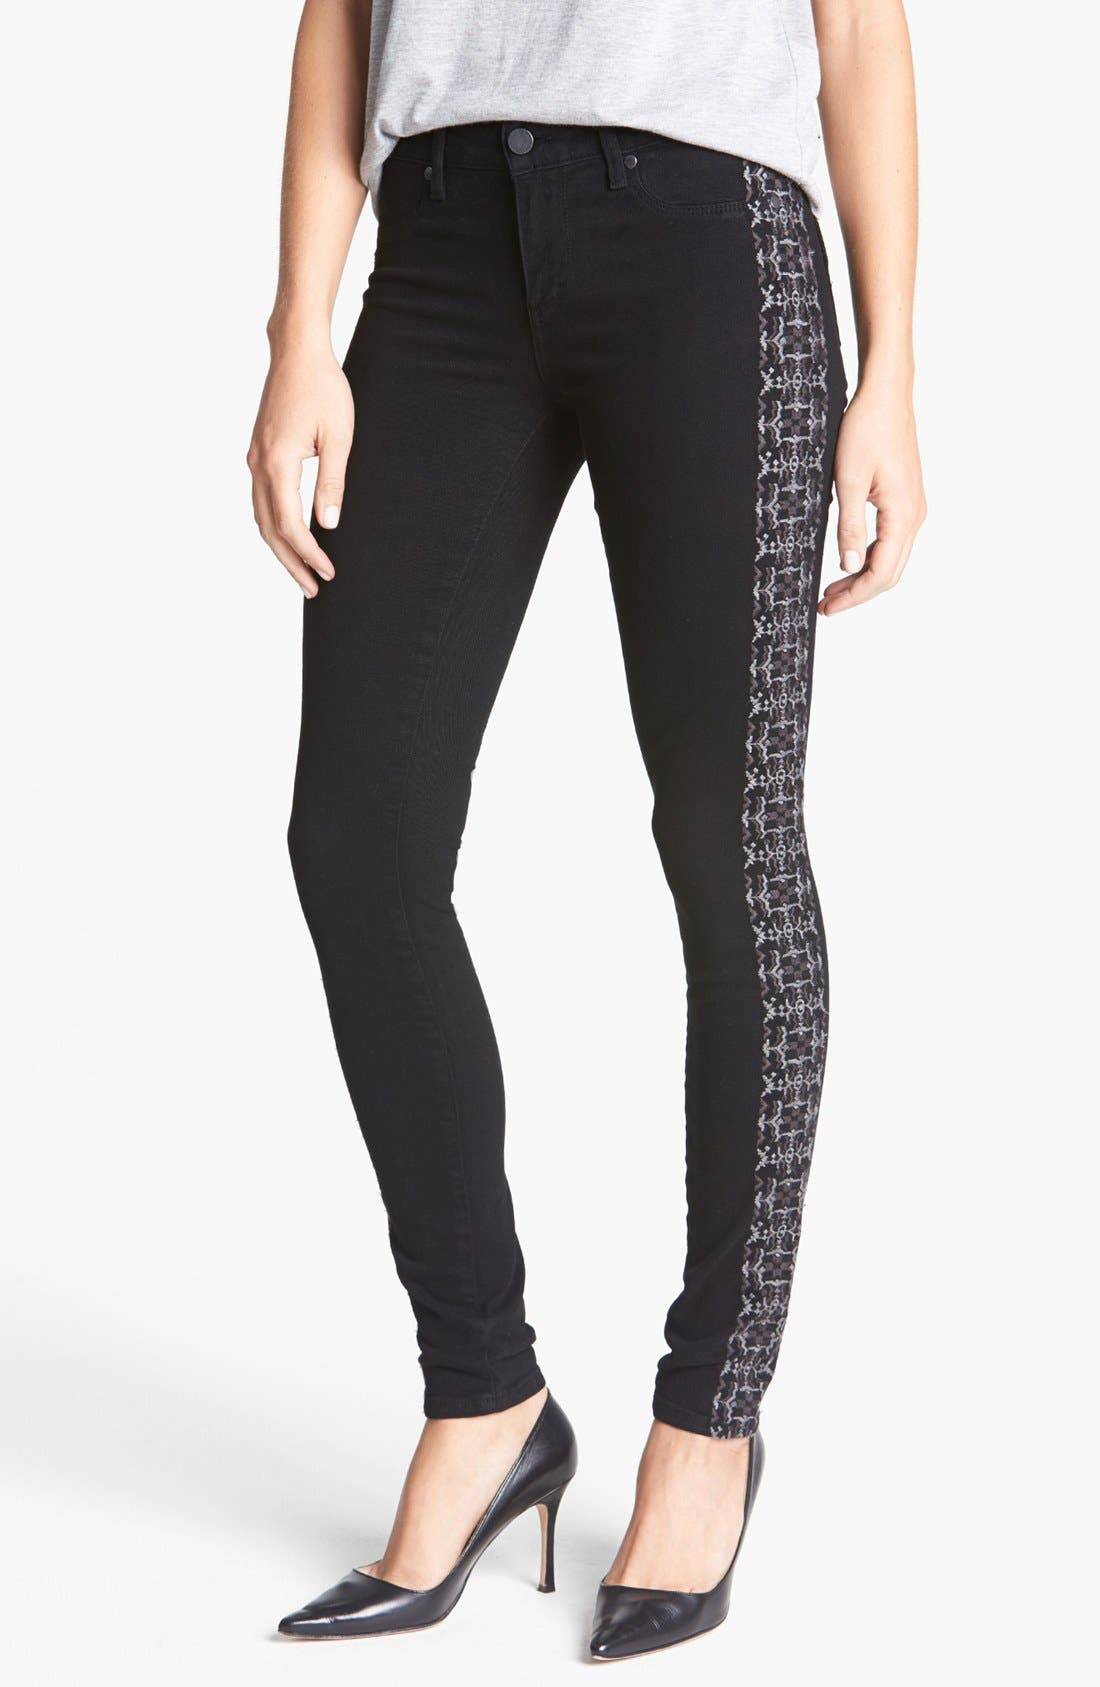 Alternate Image 1 Selected - Paige Denim 'Verdugo' Embroidered Ultra Skinny Jeans (Caliente Embroidery)